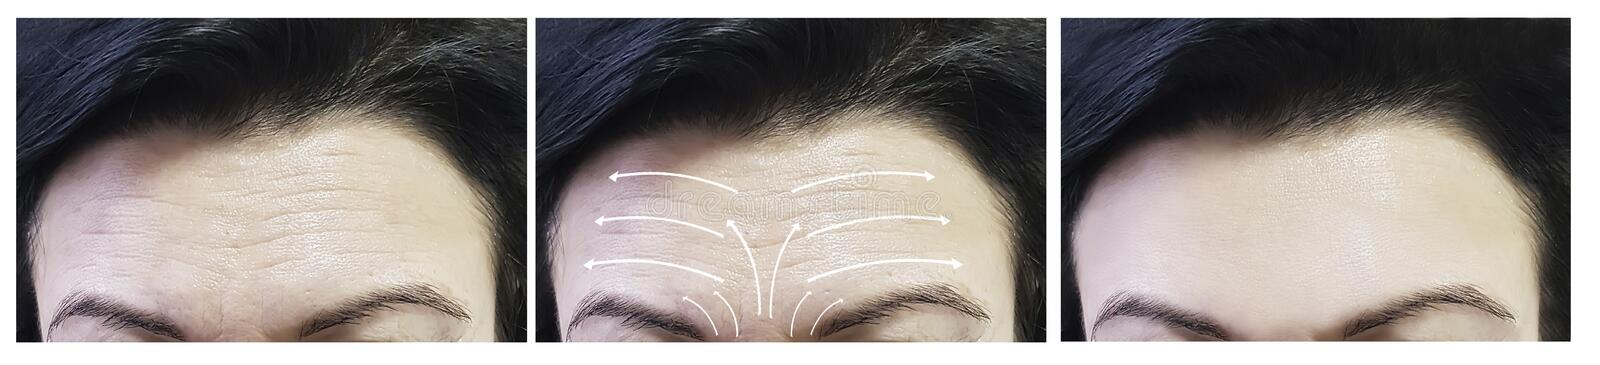 Woman face wrinkles before and after procedures correction , arrow skin tightening stock photography